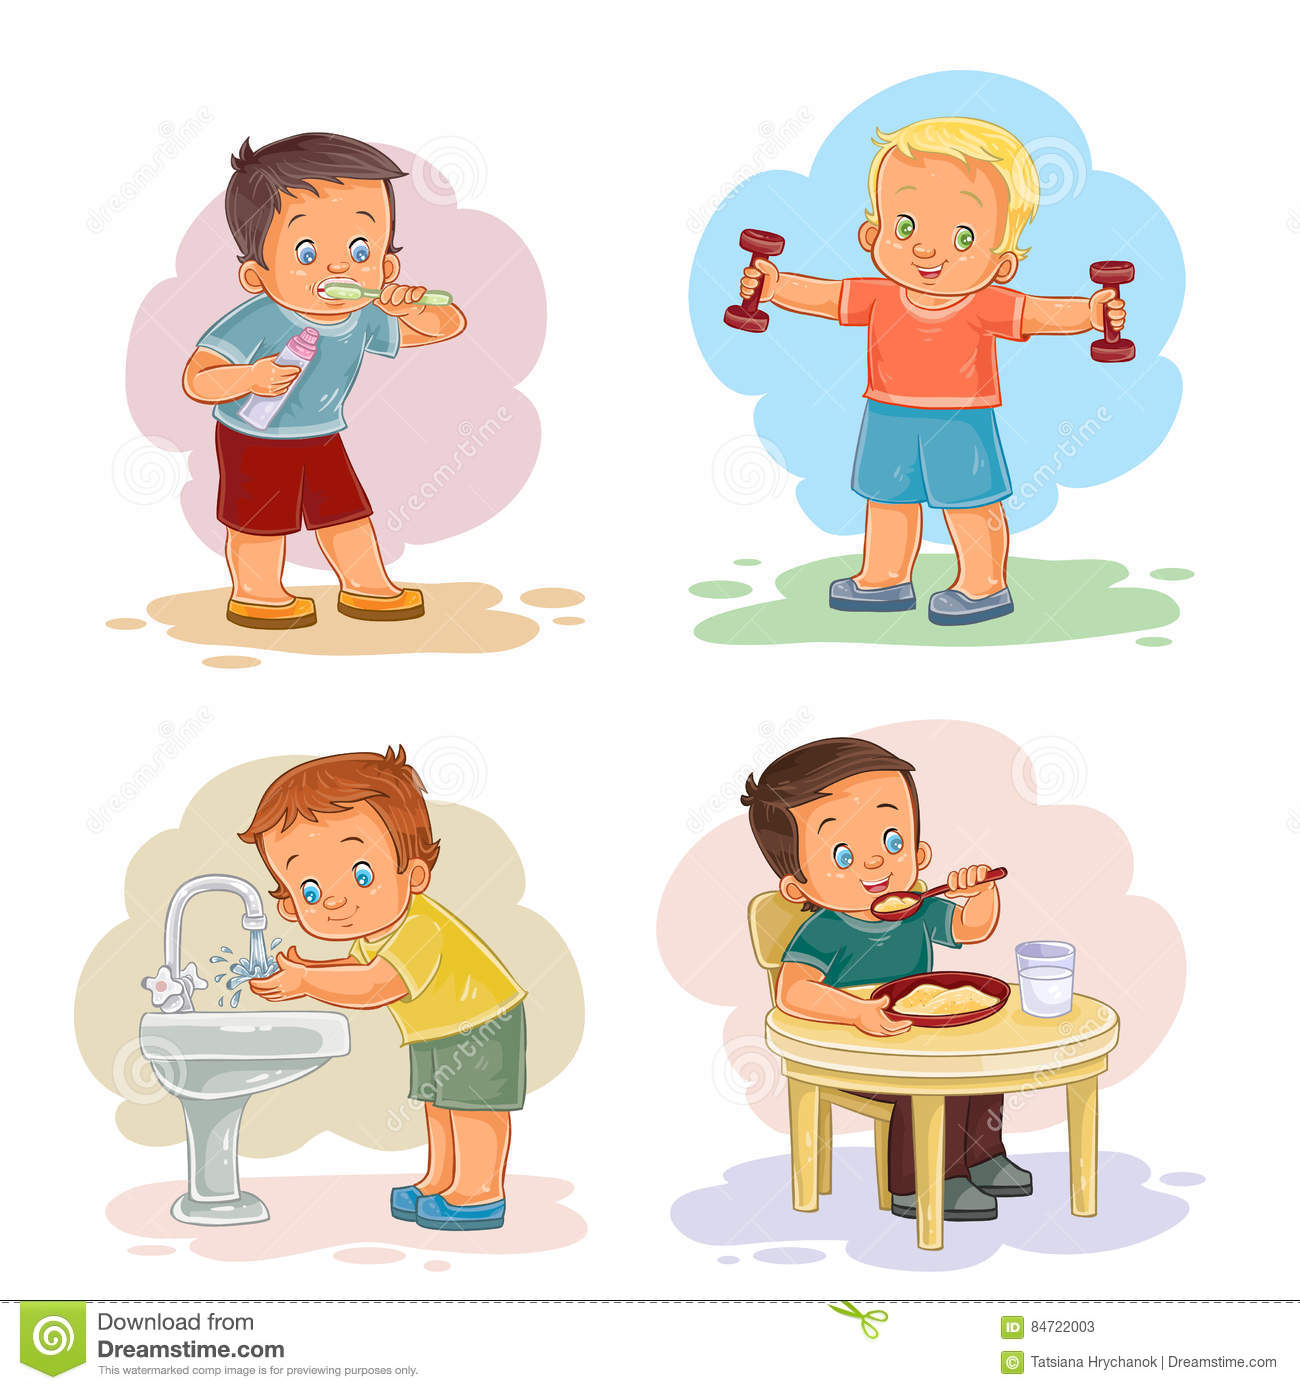 Morning Clip Art Illustrations With Young Children Stock ...